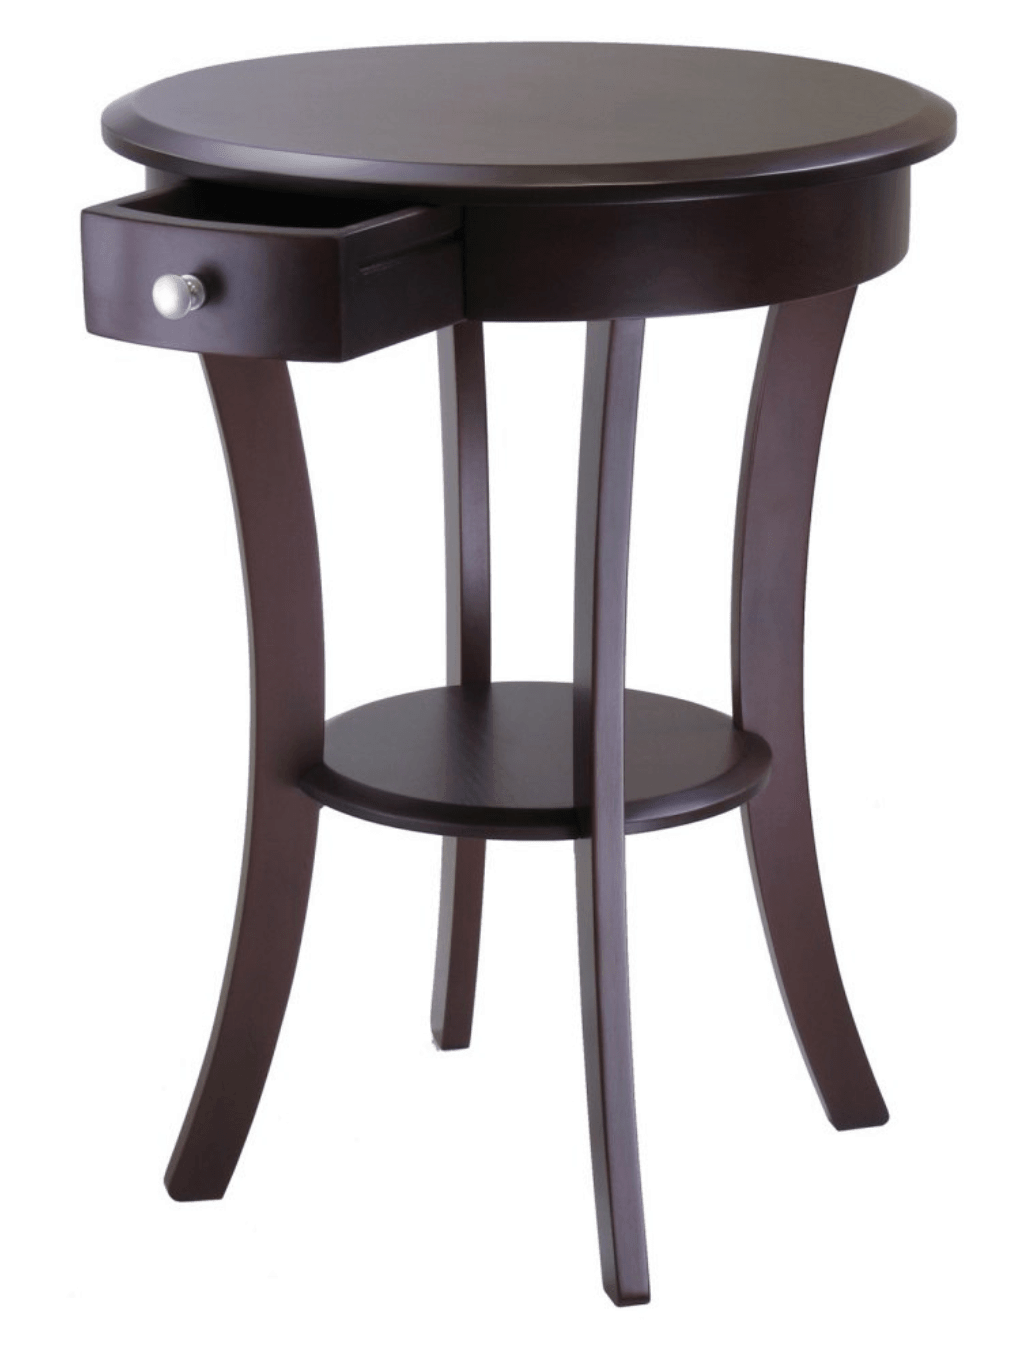 50 lovely small accent table picks for 2018. Black Bedroom Furniture Sets. Home Design Ideas